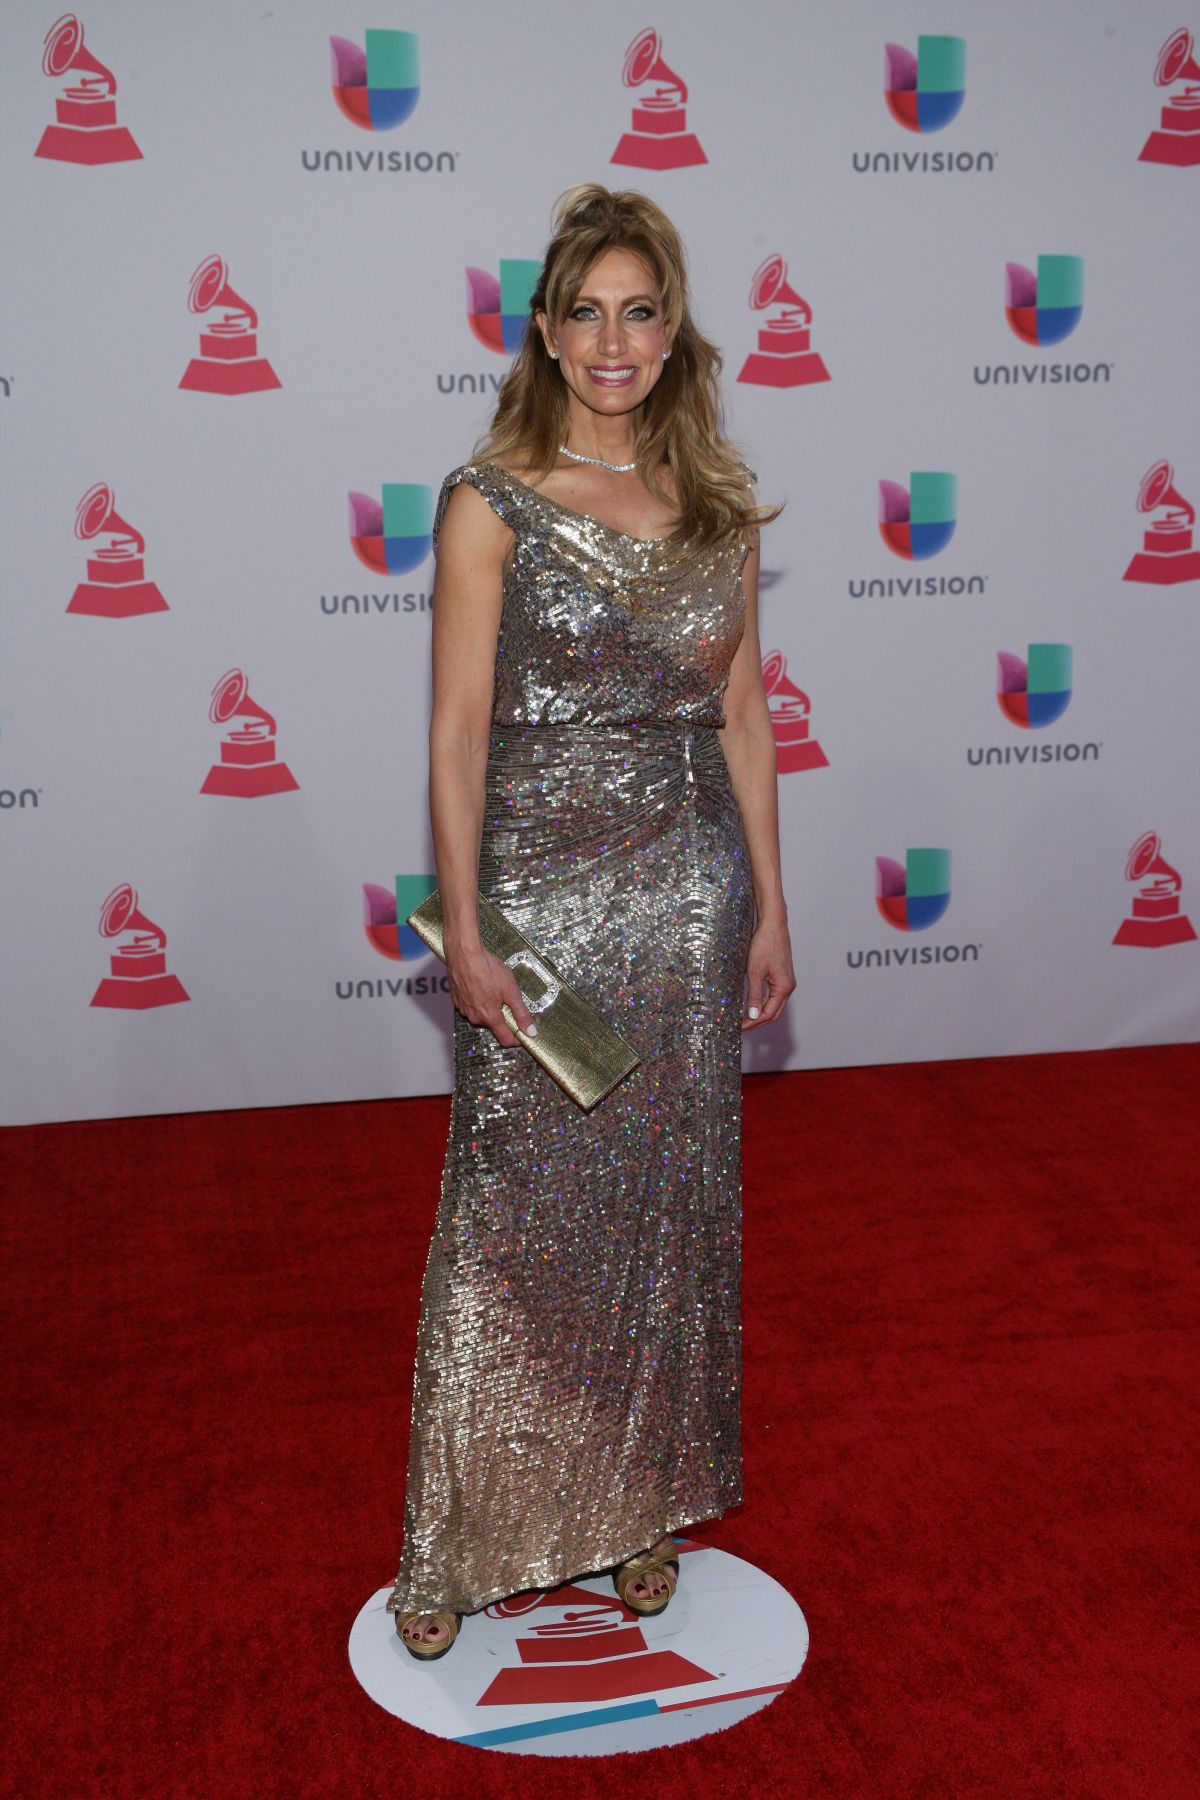 LILI ESTEFAN at 2015 Latin Grammy Awards in Las Vegas 11/18/2015